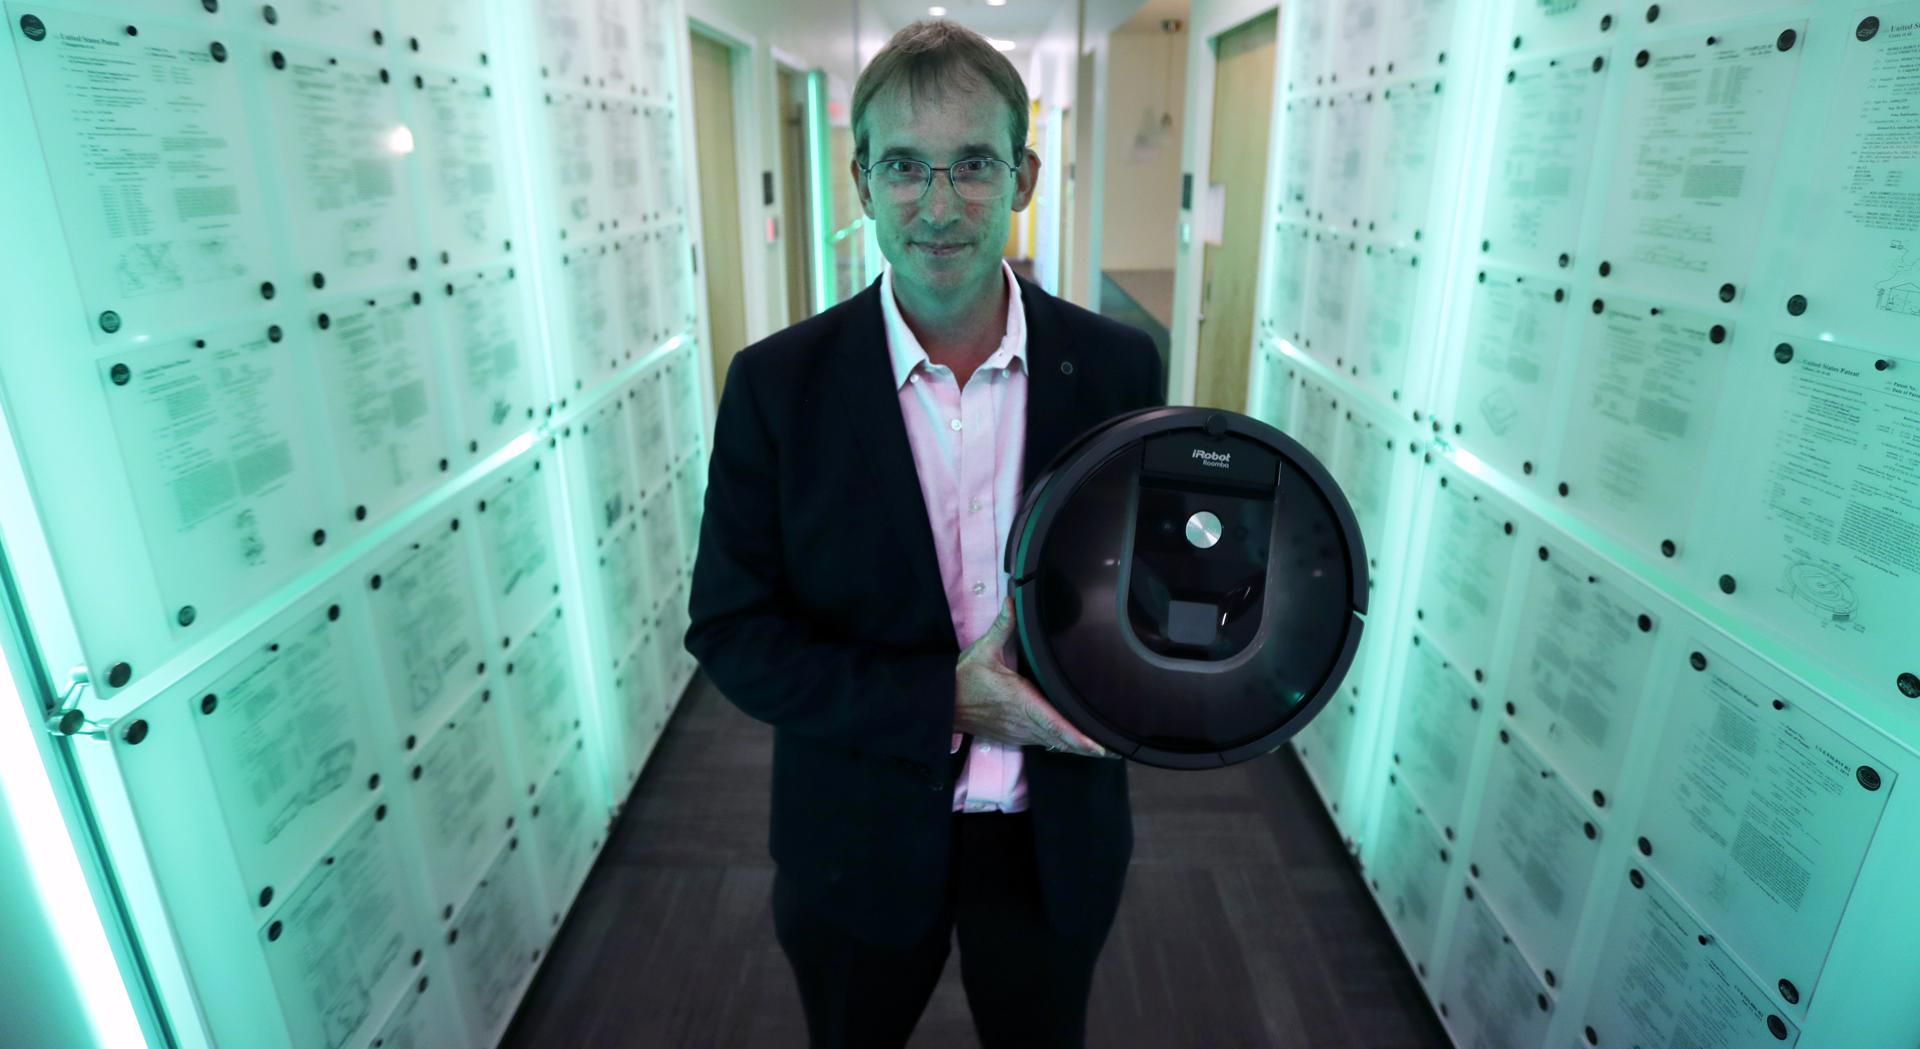 iRobot cofounder and CEO Colin Angle says that Roomba owners became so attached to their bot that when it broke they wanted it fixed instead of being replaced by a new one.